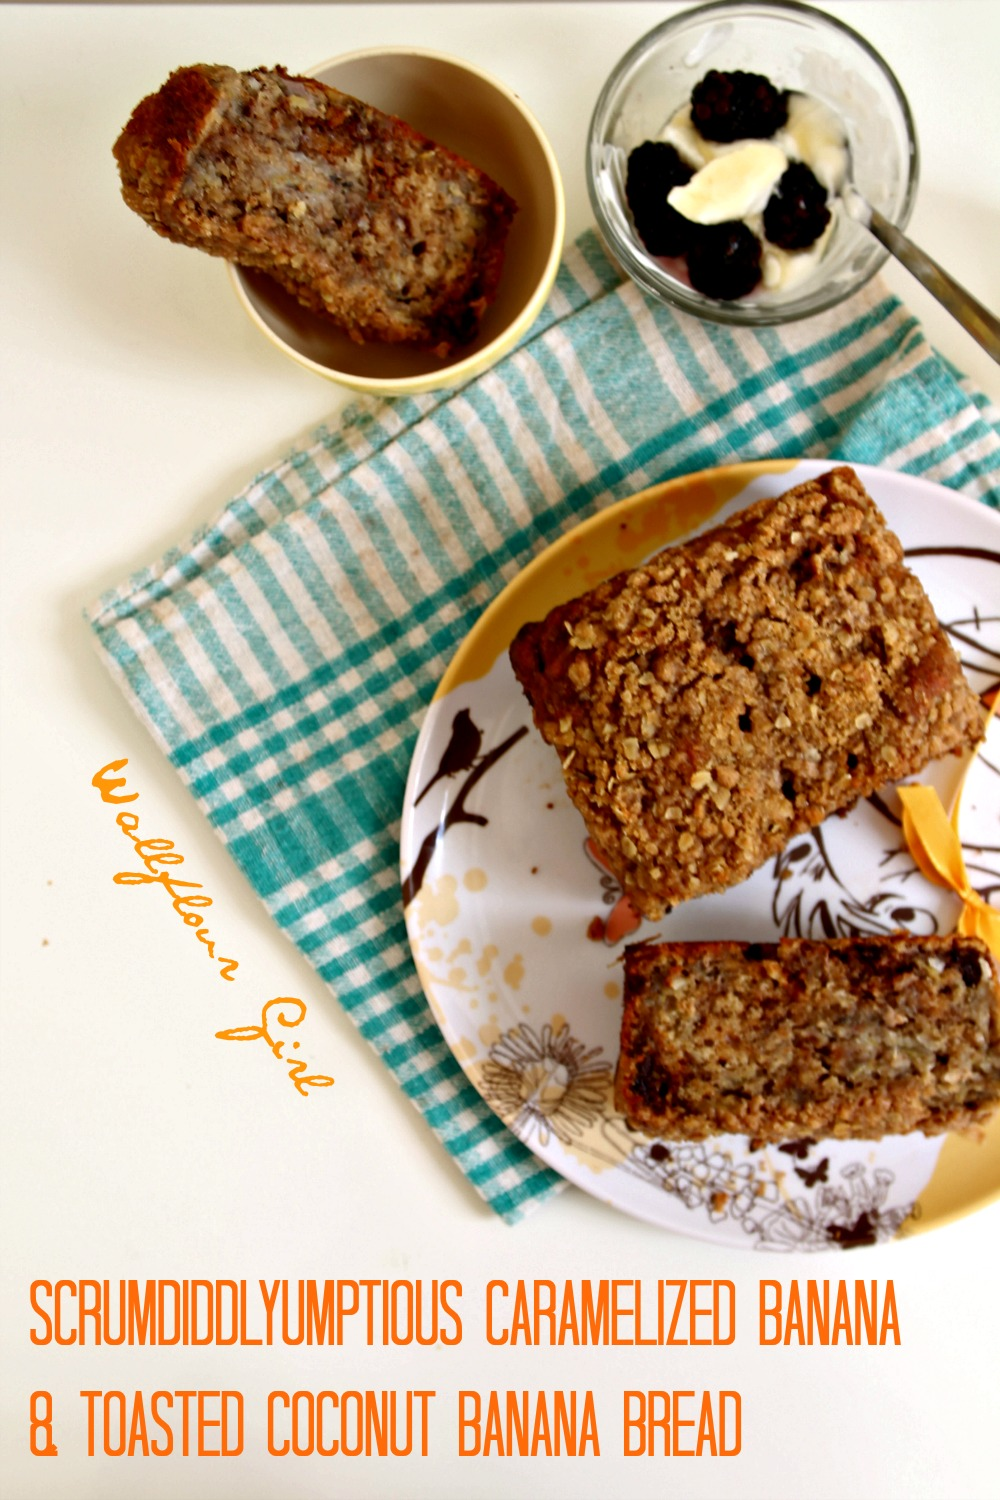 Scrumdiddlyumptious Caramelized Banana and Toasted Coconut Banana Bread 2--013014